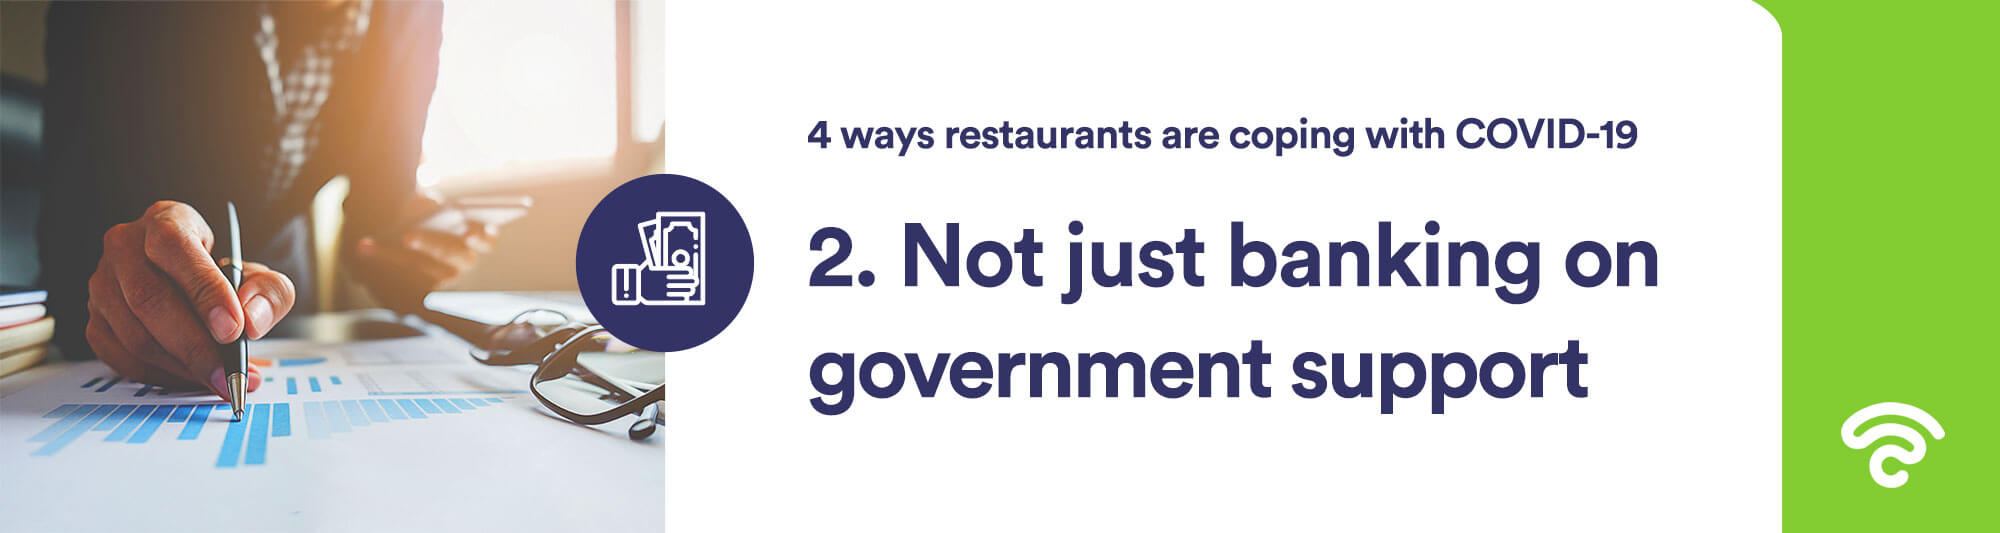 restaurant covid-19 government support